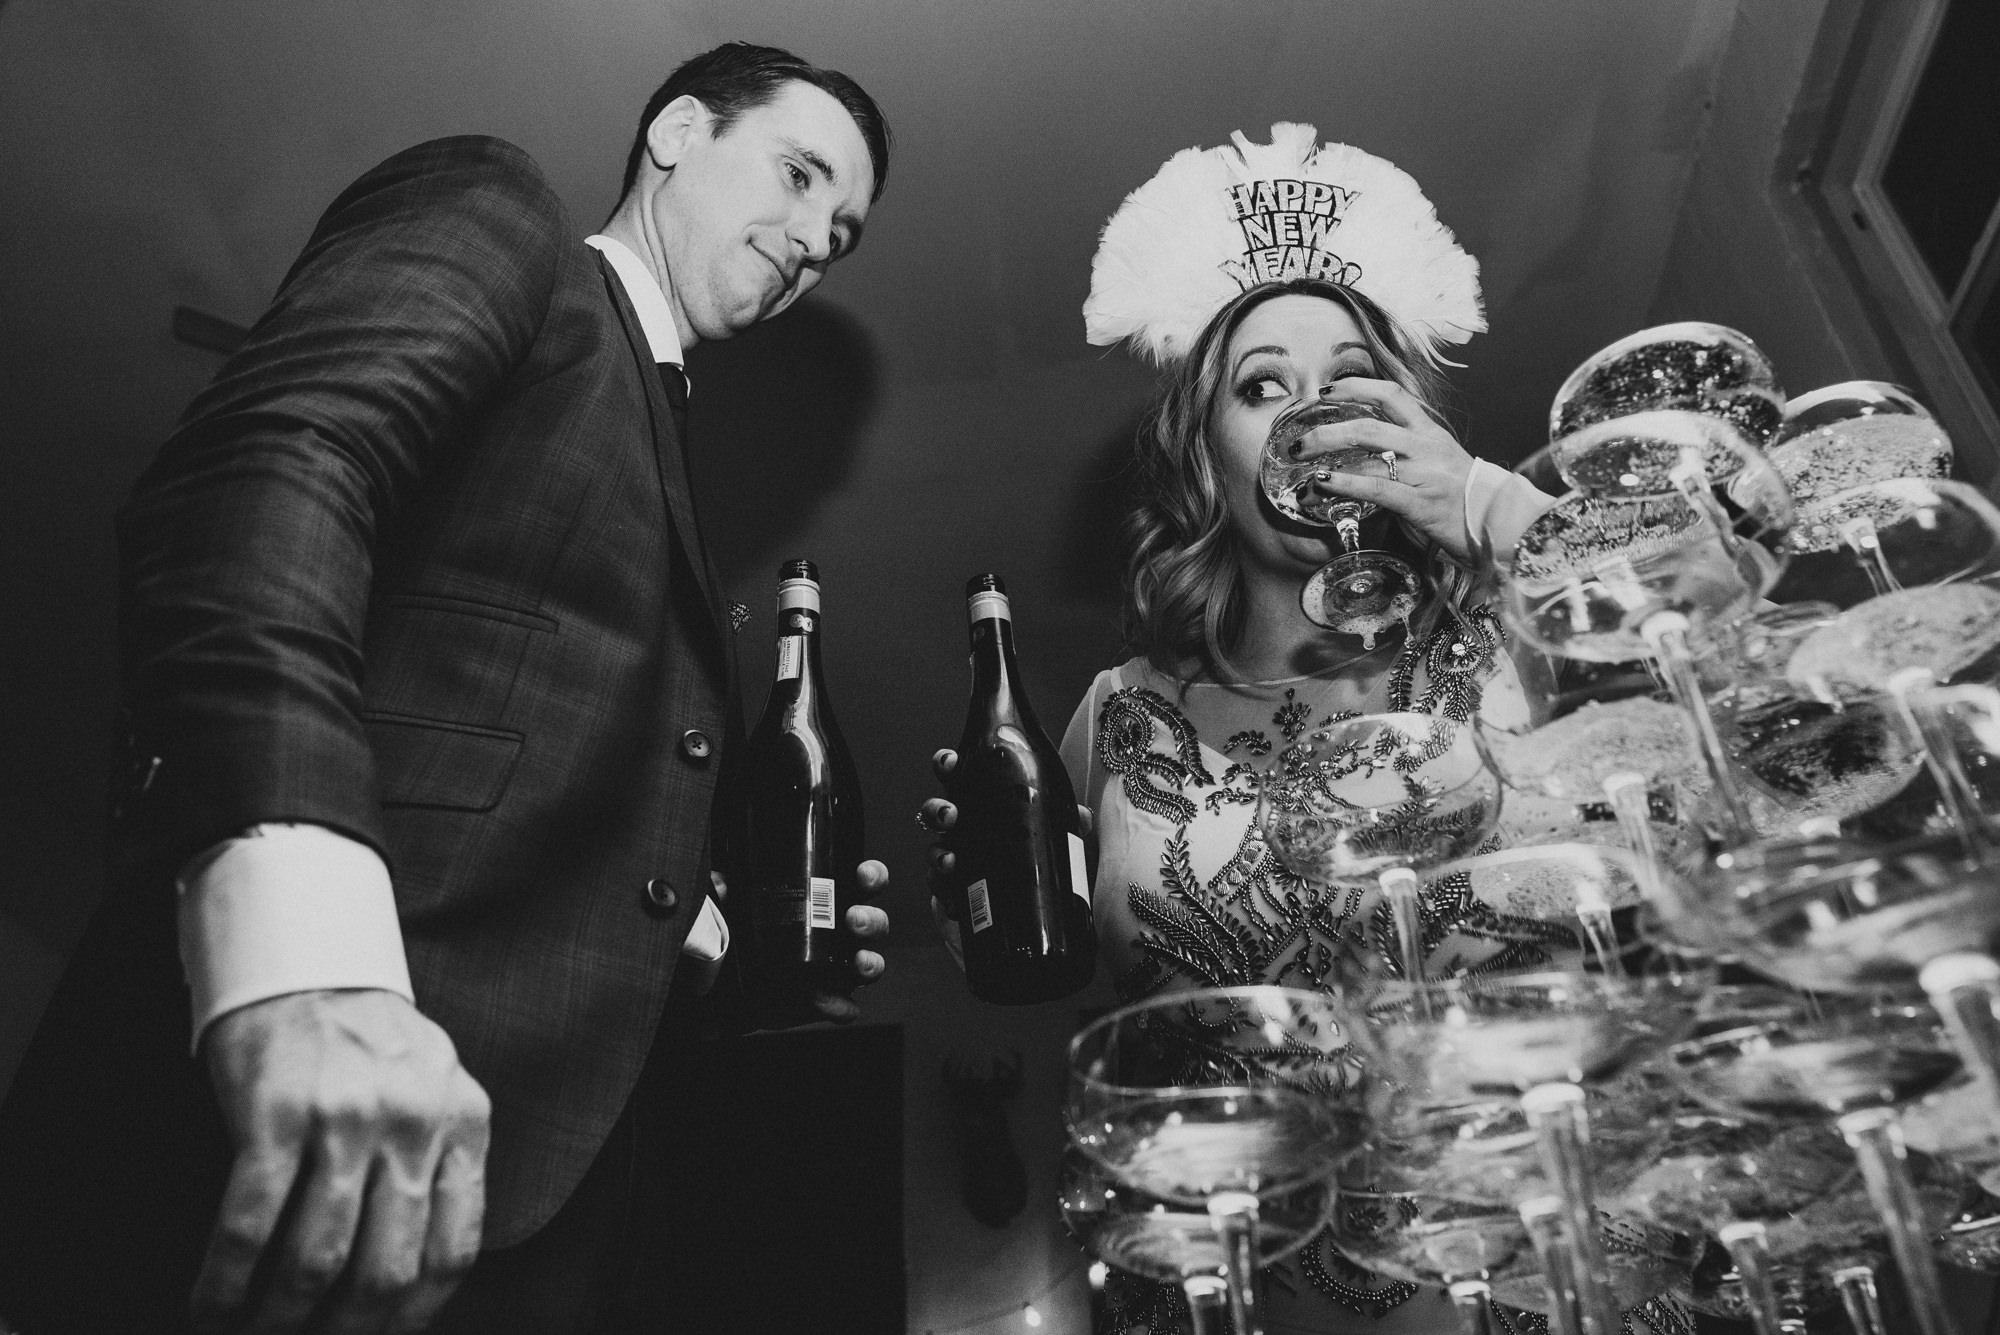 Church-and- Company-Baltimore-Wedding-at-New-Year's-Eve-by-Gabriele-Stonyte-Photography.jpg